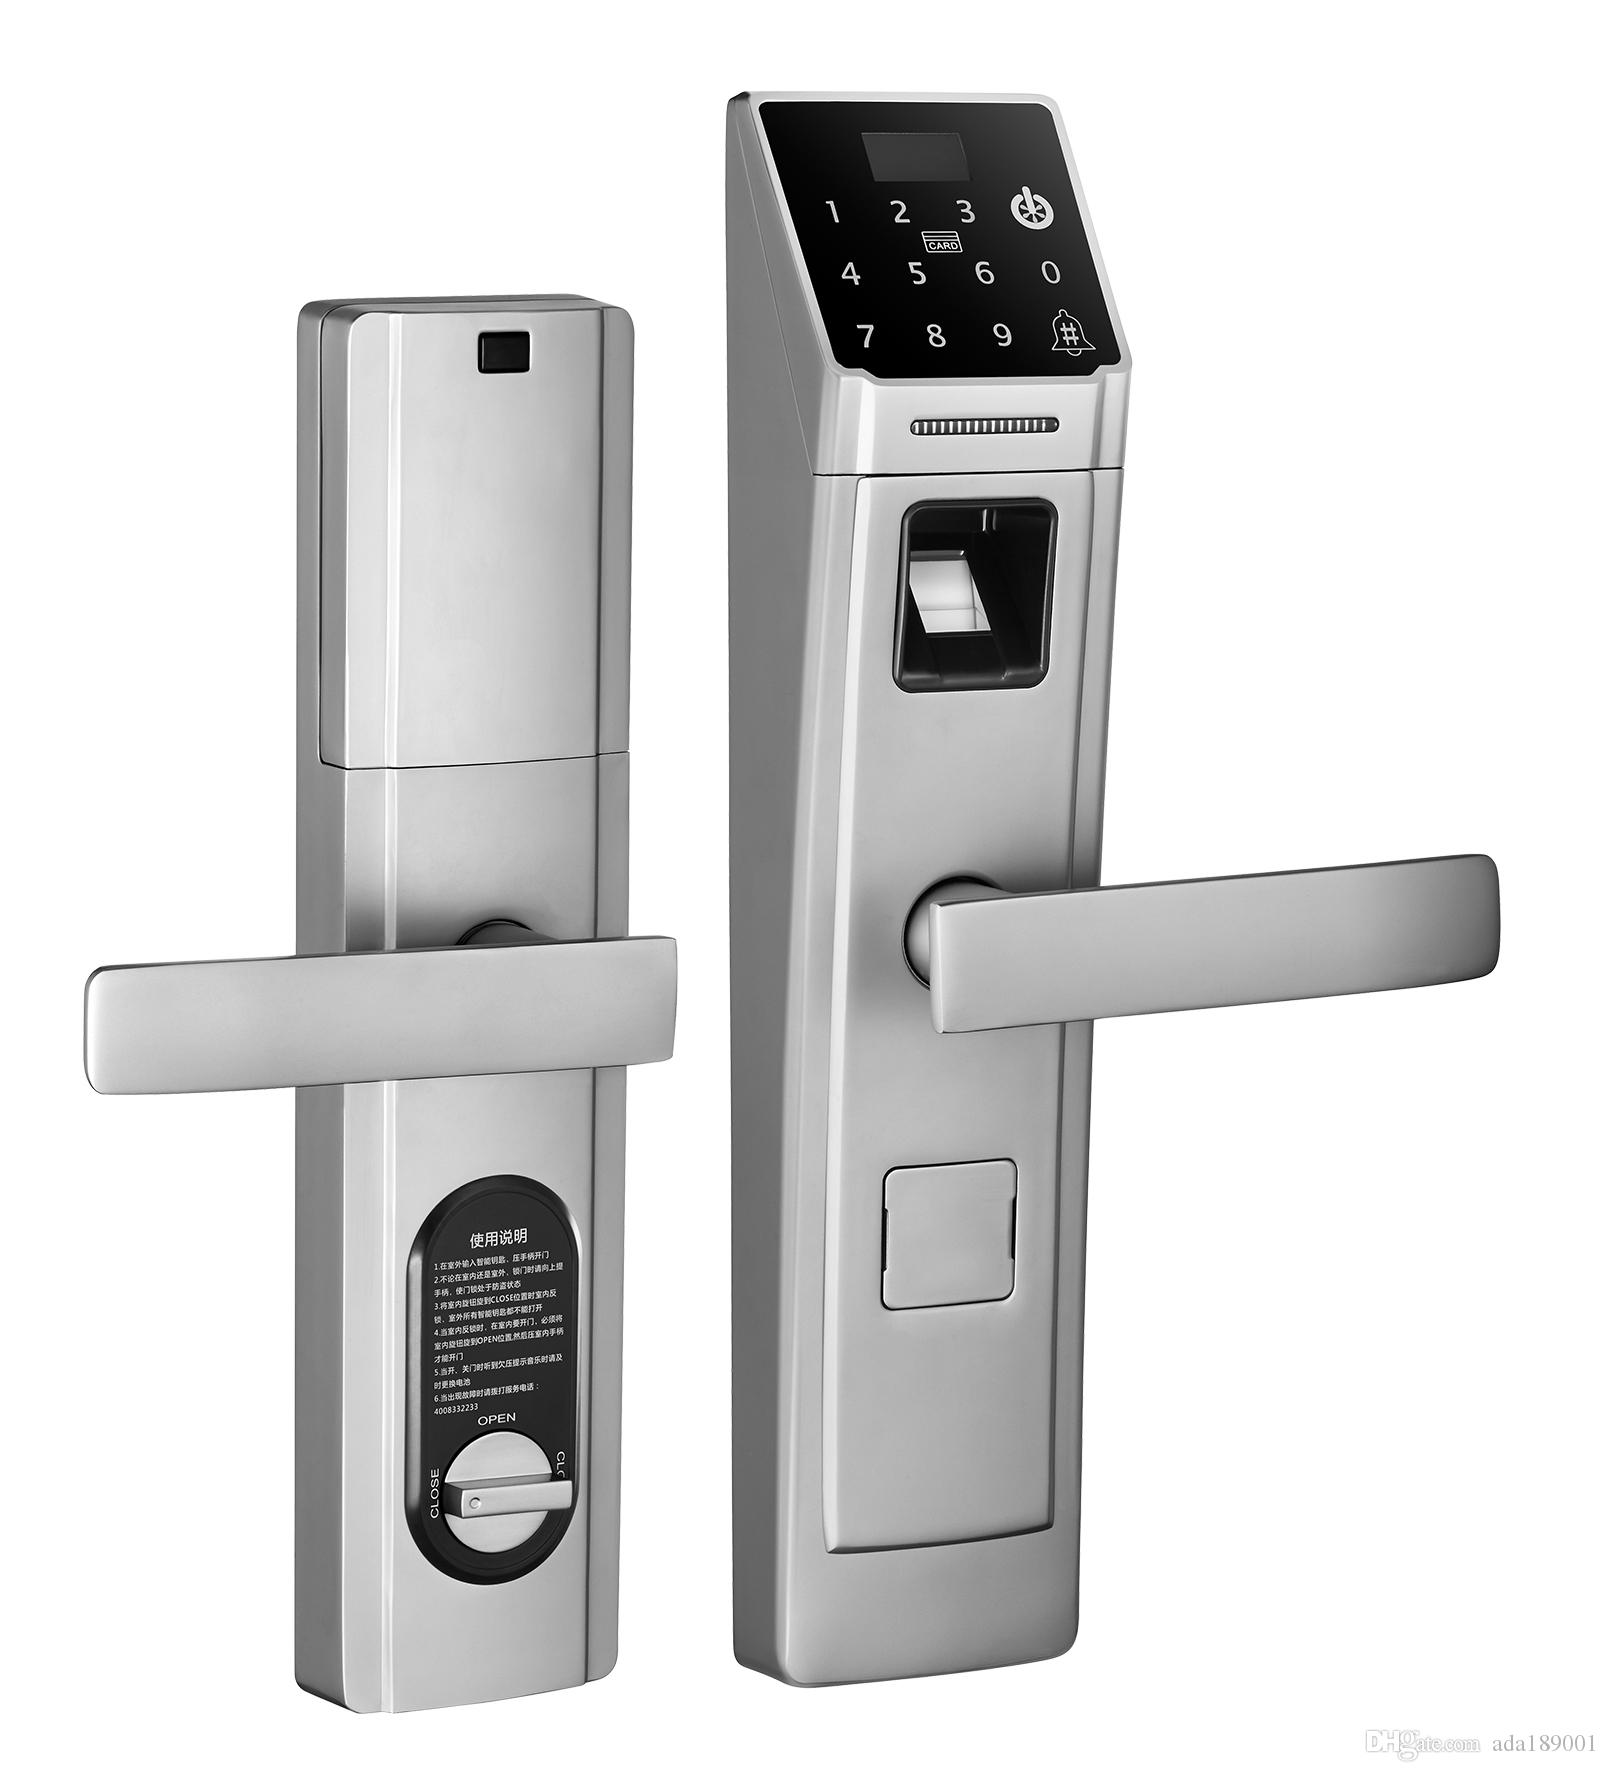 electronic door lock home fingerprint lock home security doors combination lock locks intelligent are wang lisuo